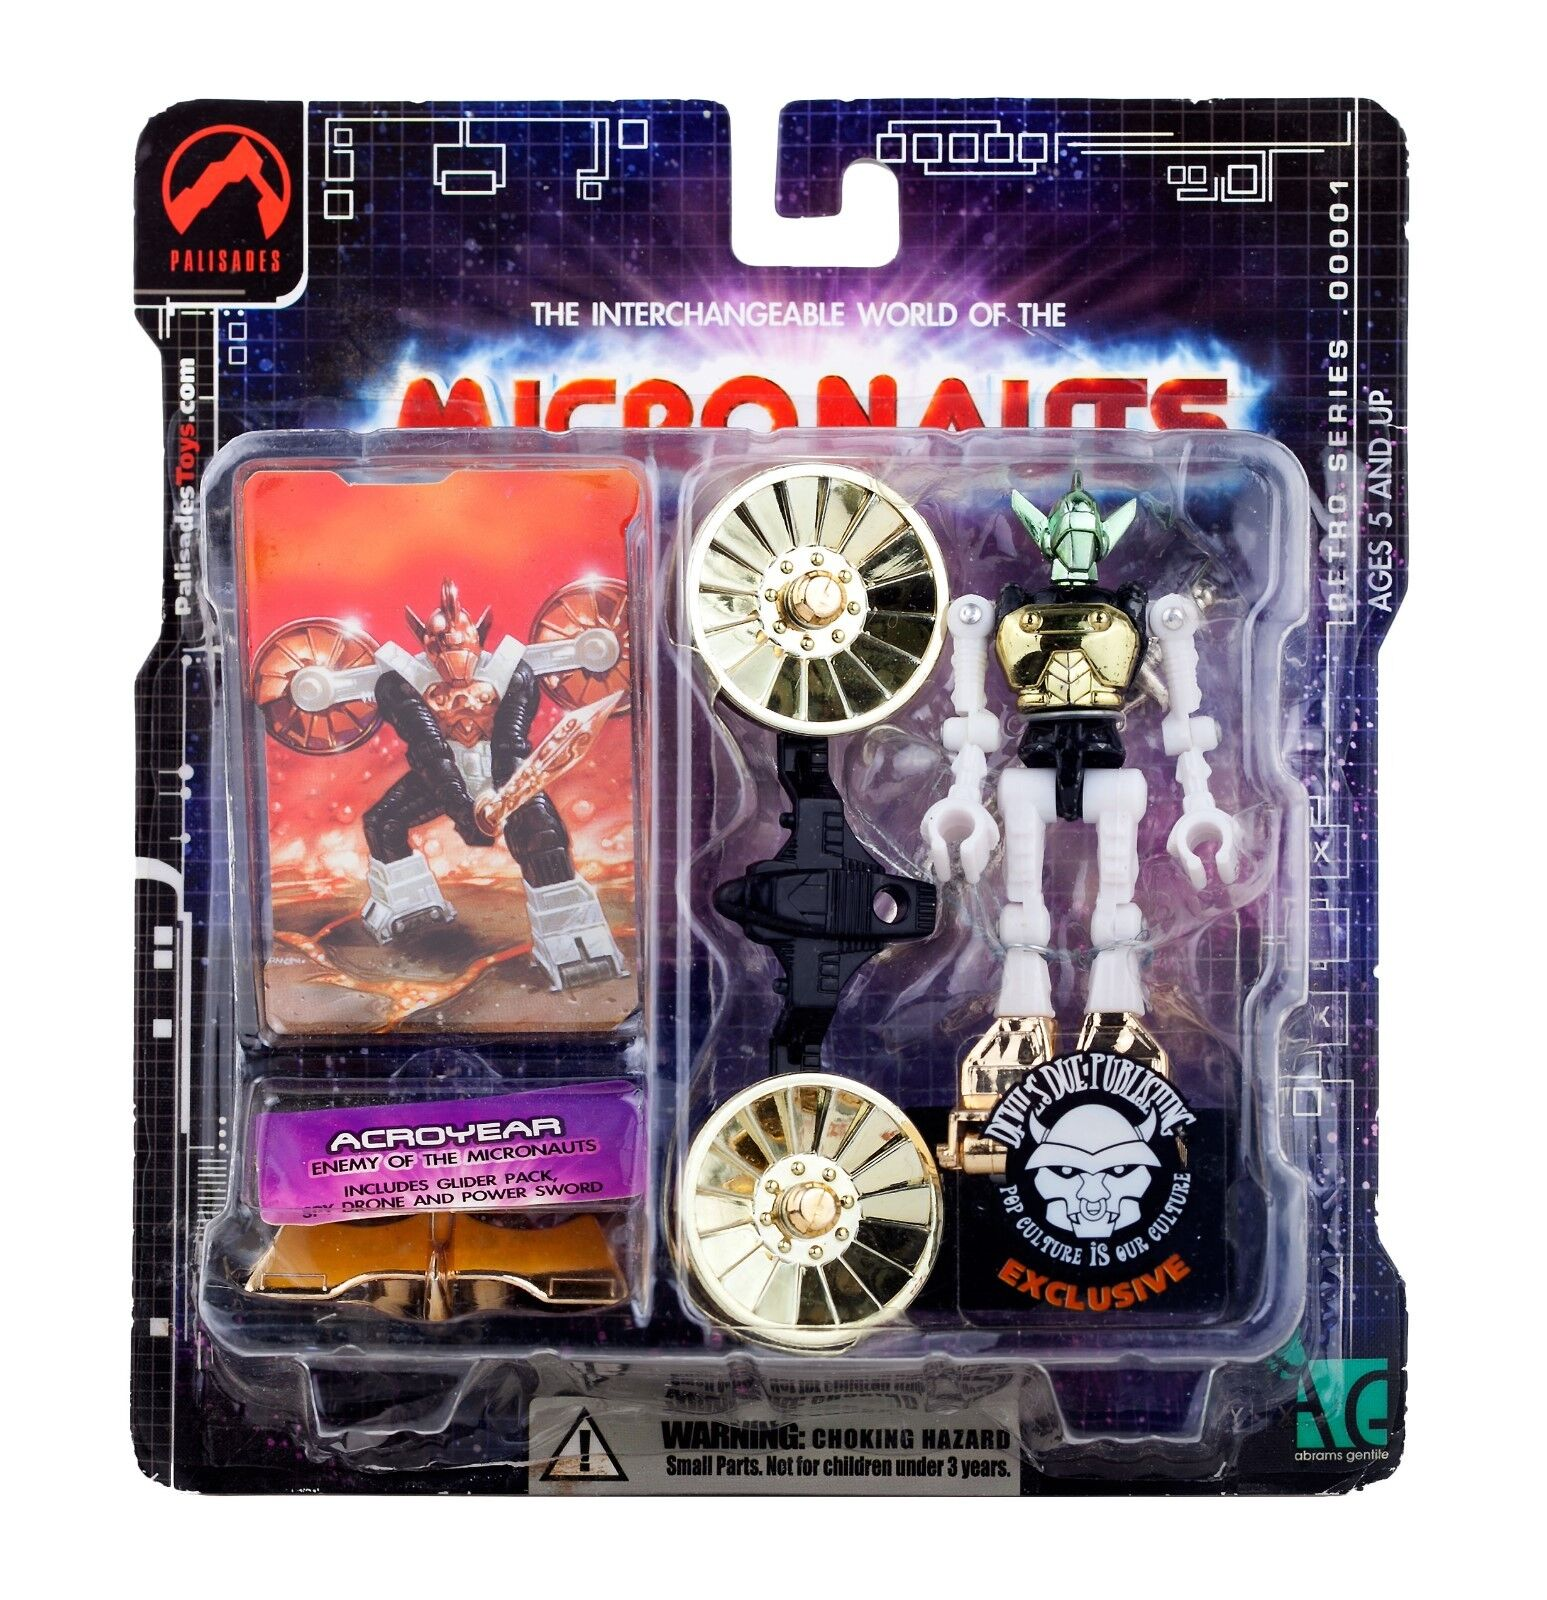 NEW PALISADES 2002 Retro MICRONAUTS ACROYEAR ACTION FIGURE Devils Due Exclusive